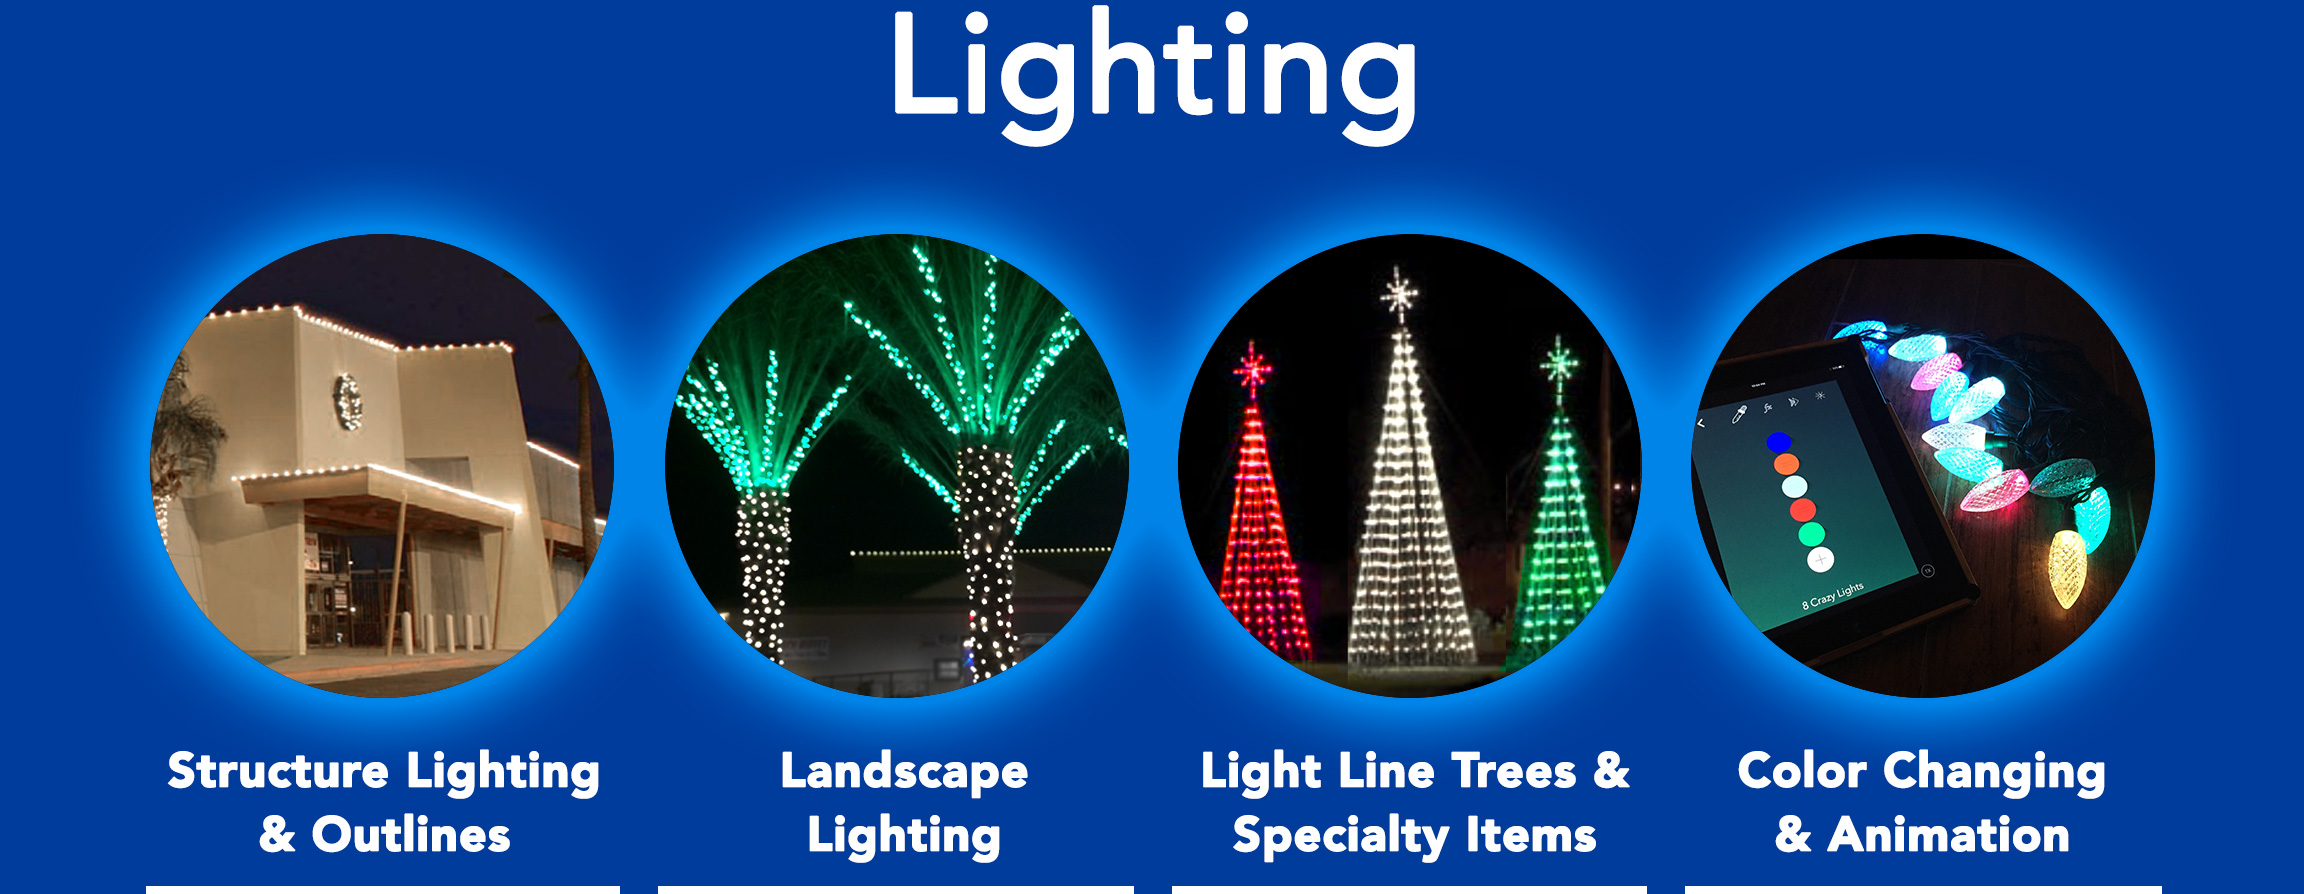 Structure Lighting & Building Outlines. Landcape Lighting. Light Line Trees & Specialty Lighted Items. Color changing LED lights and animated light shows.